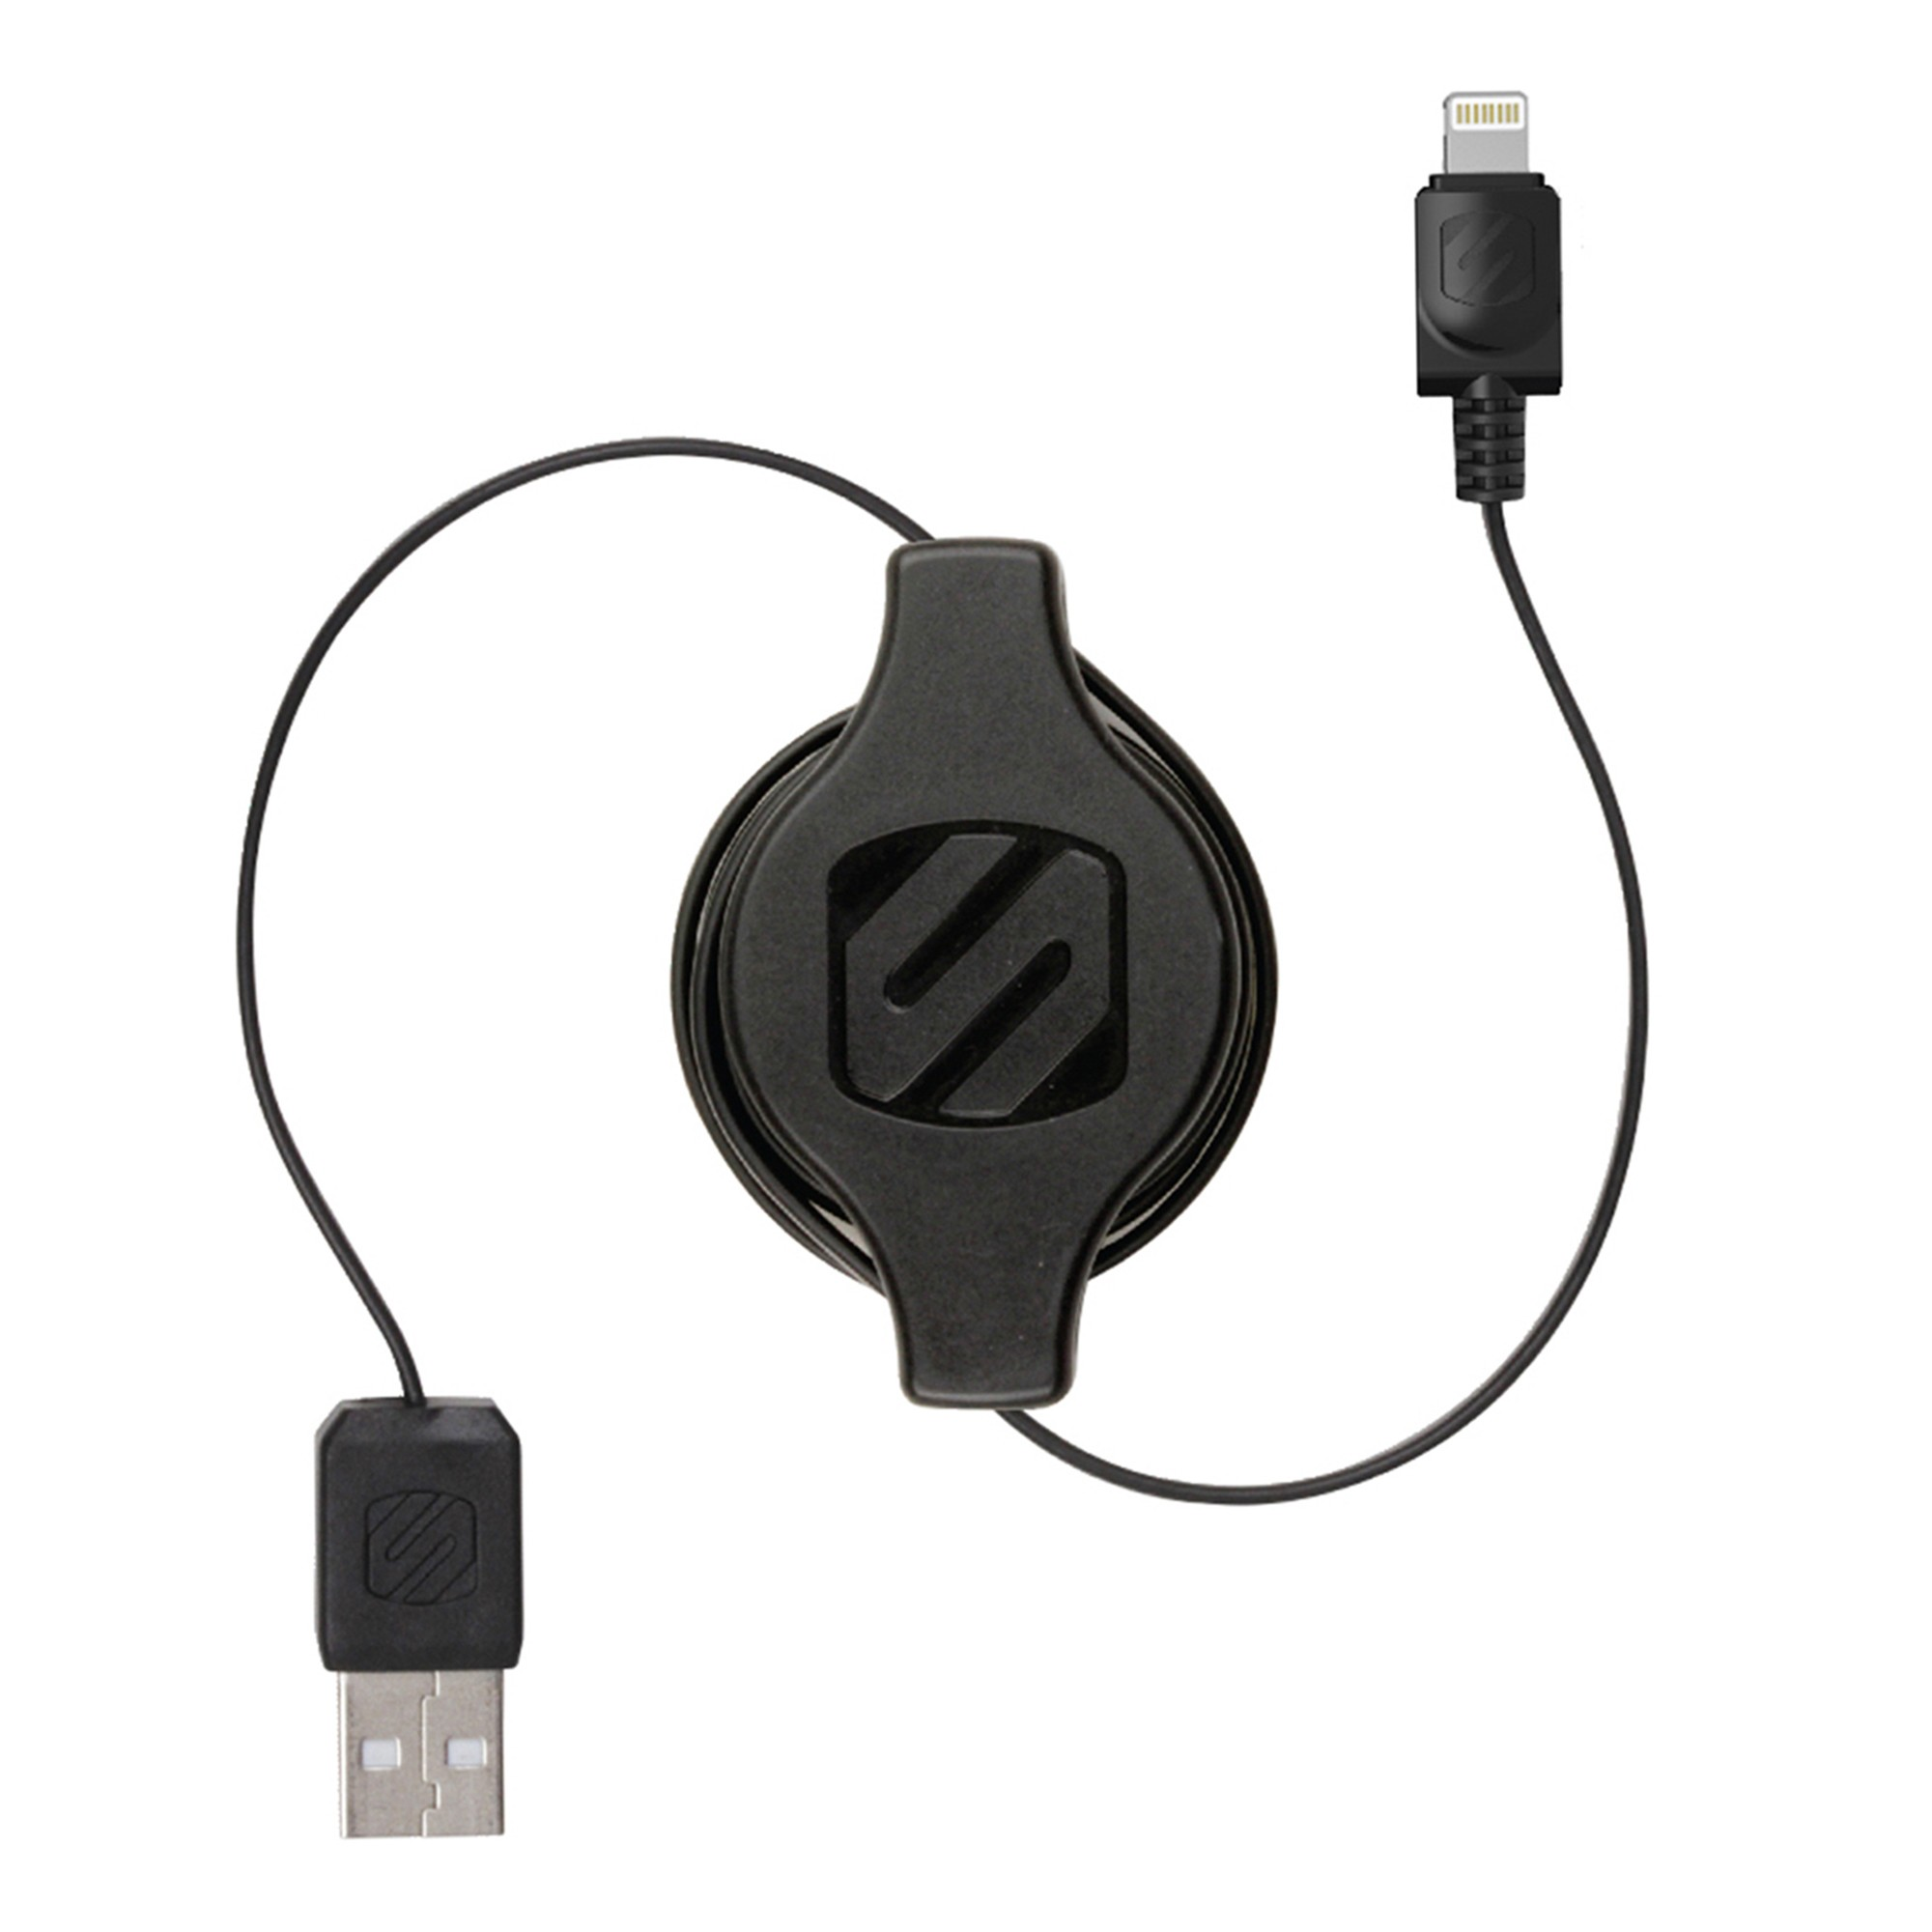 Scosche's Retractable Lightning Cable Looks Perfect For Daily Commuting